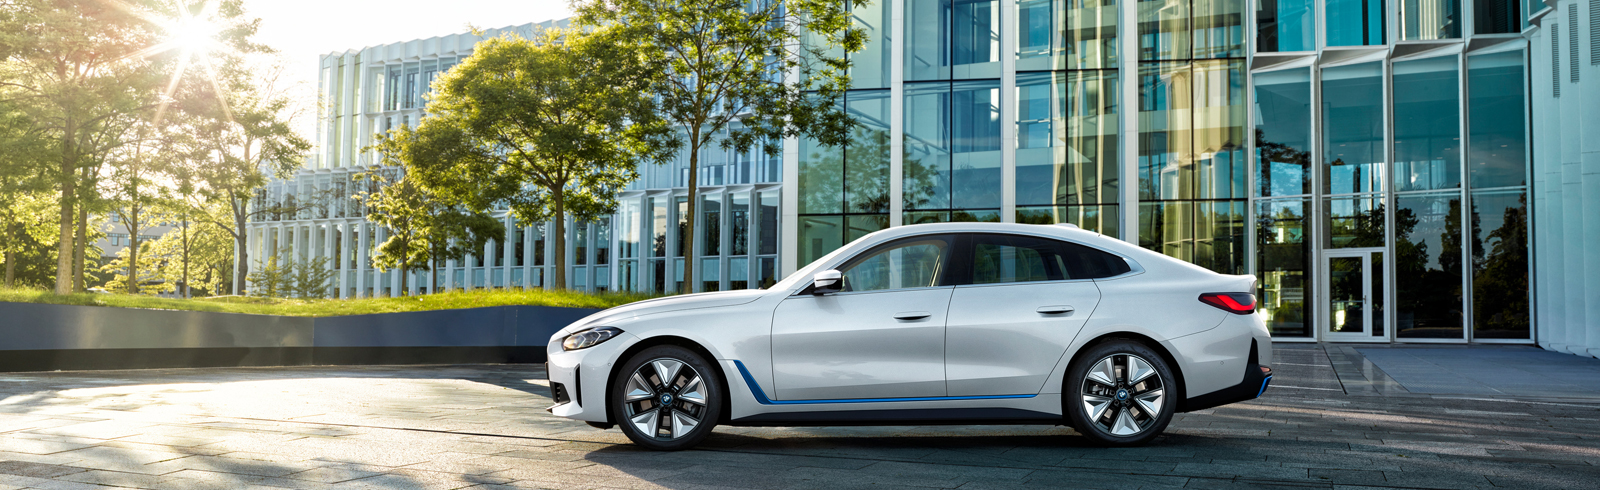 2022 BMW i4 eDrive40 and BMW i4 M50 - specifications